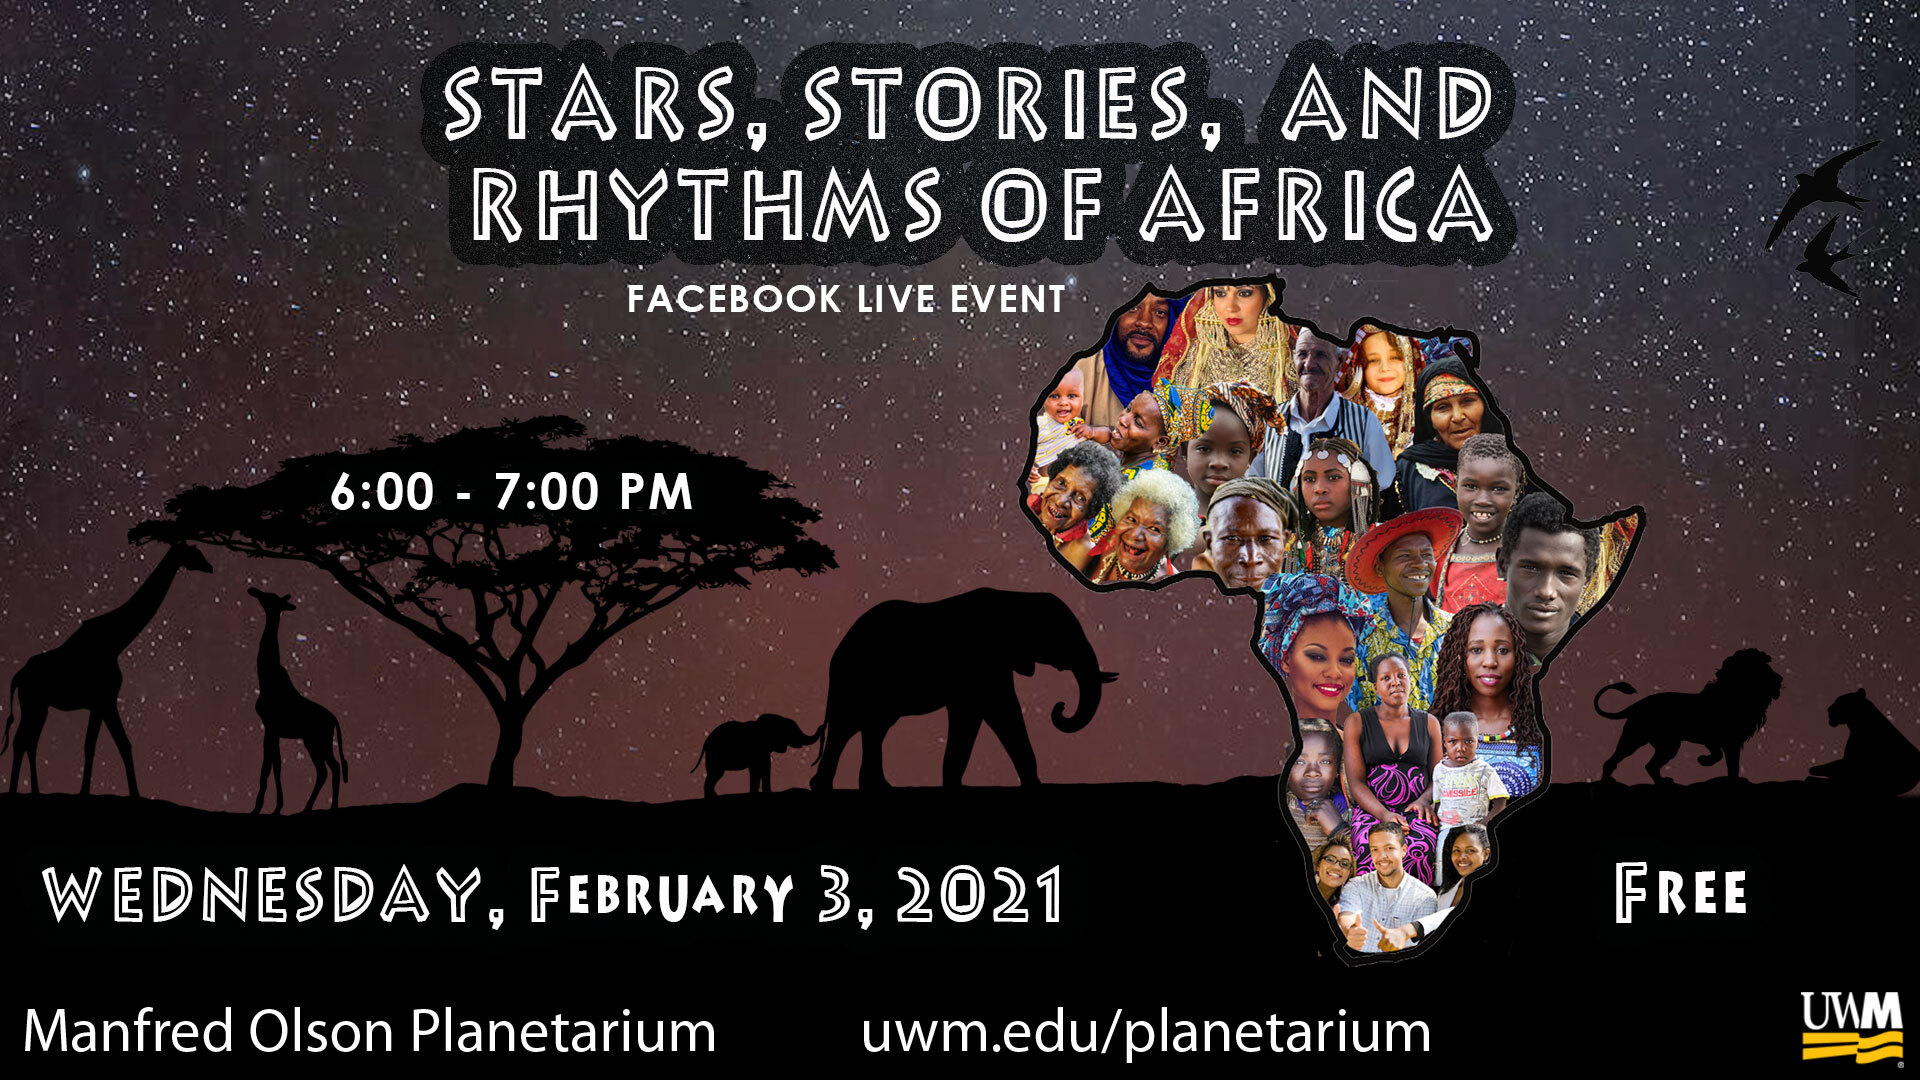 Stars Stories & Rhythms of Africa; Facebook Live Event; February 3, 2021 6 - 7 pm